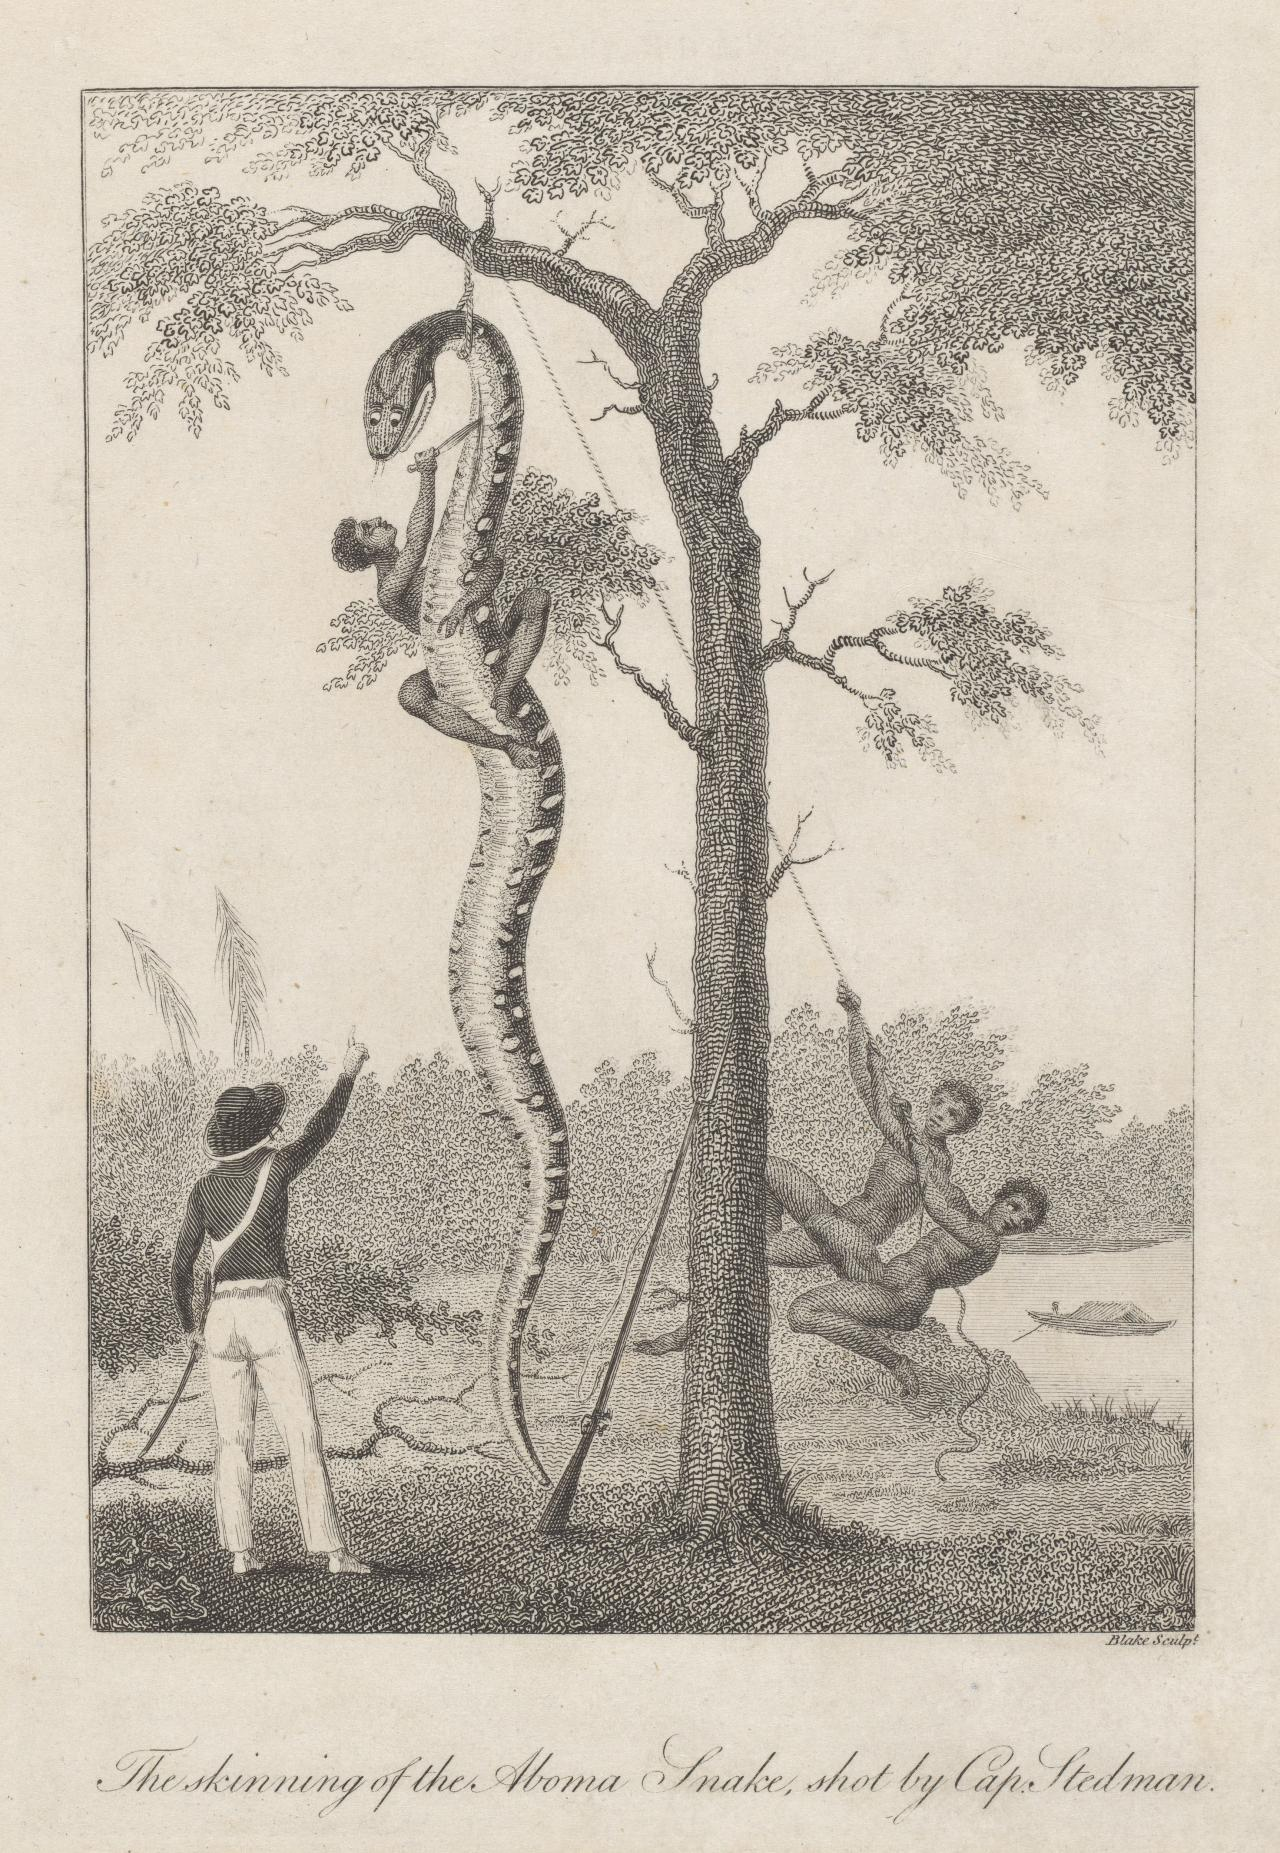 The skinning of the Aboma Snake shot by Cap. Stedman